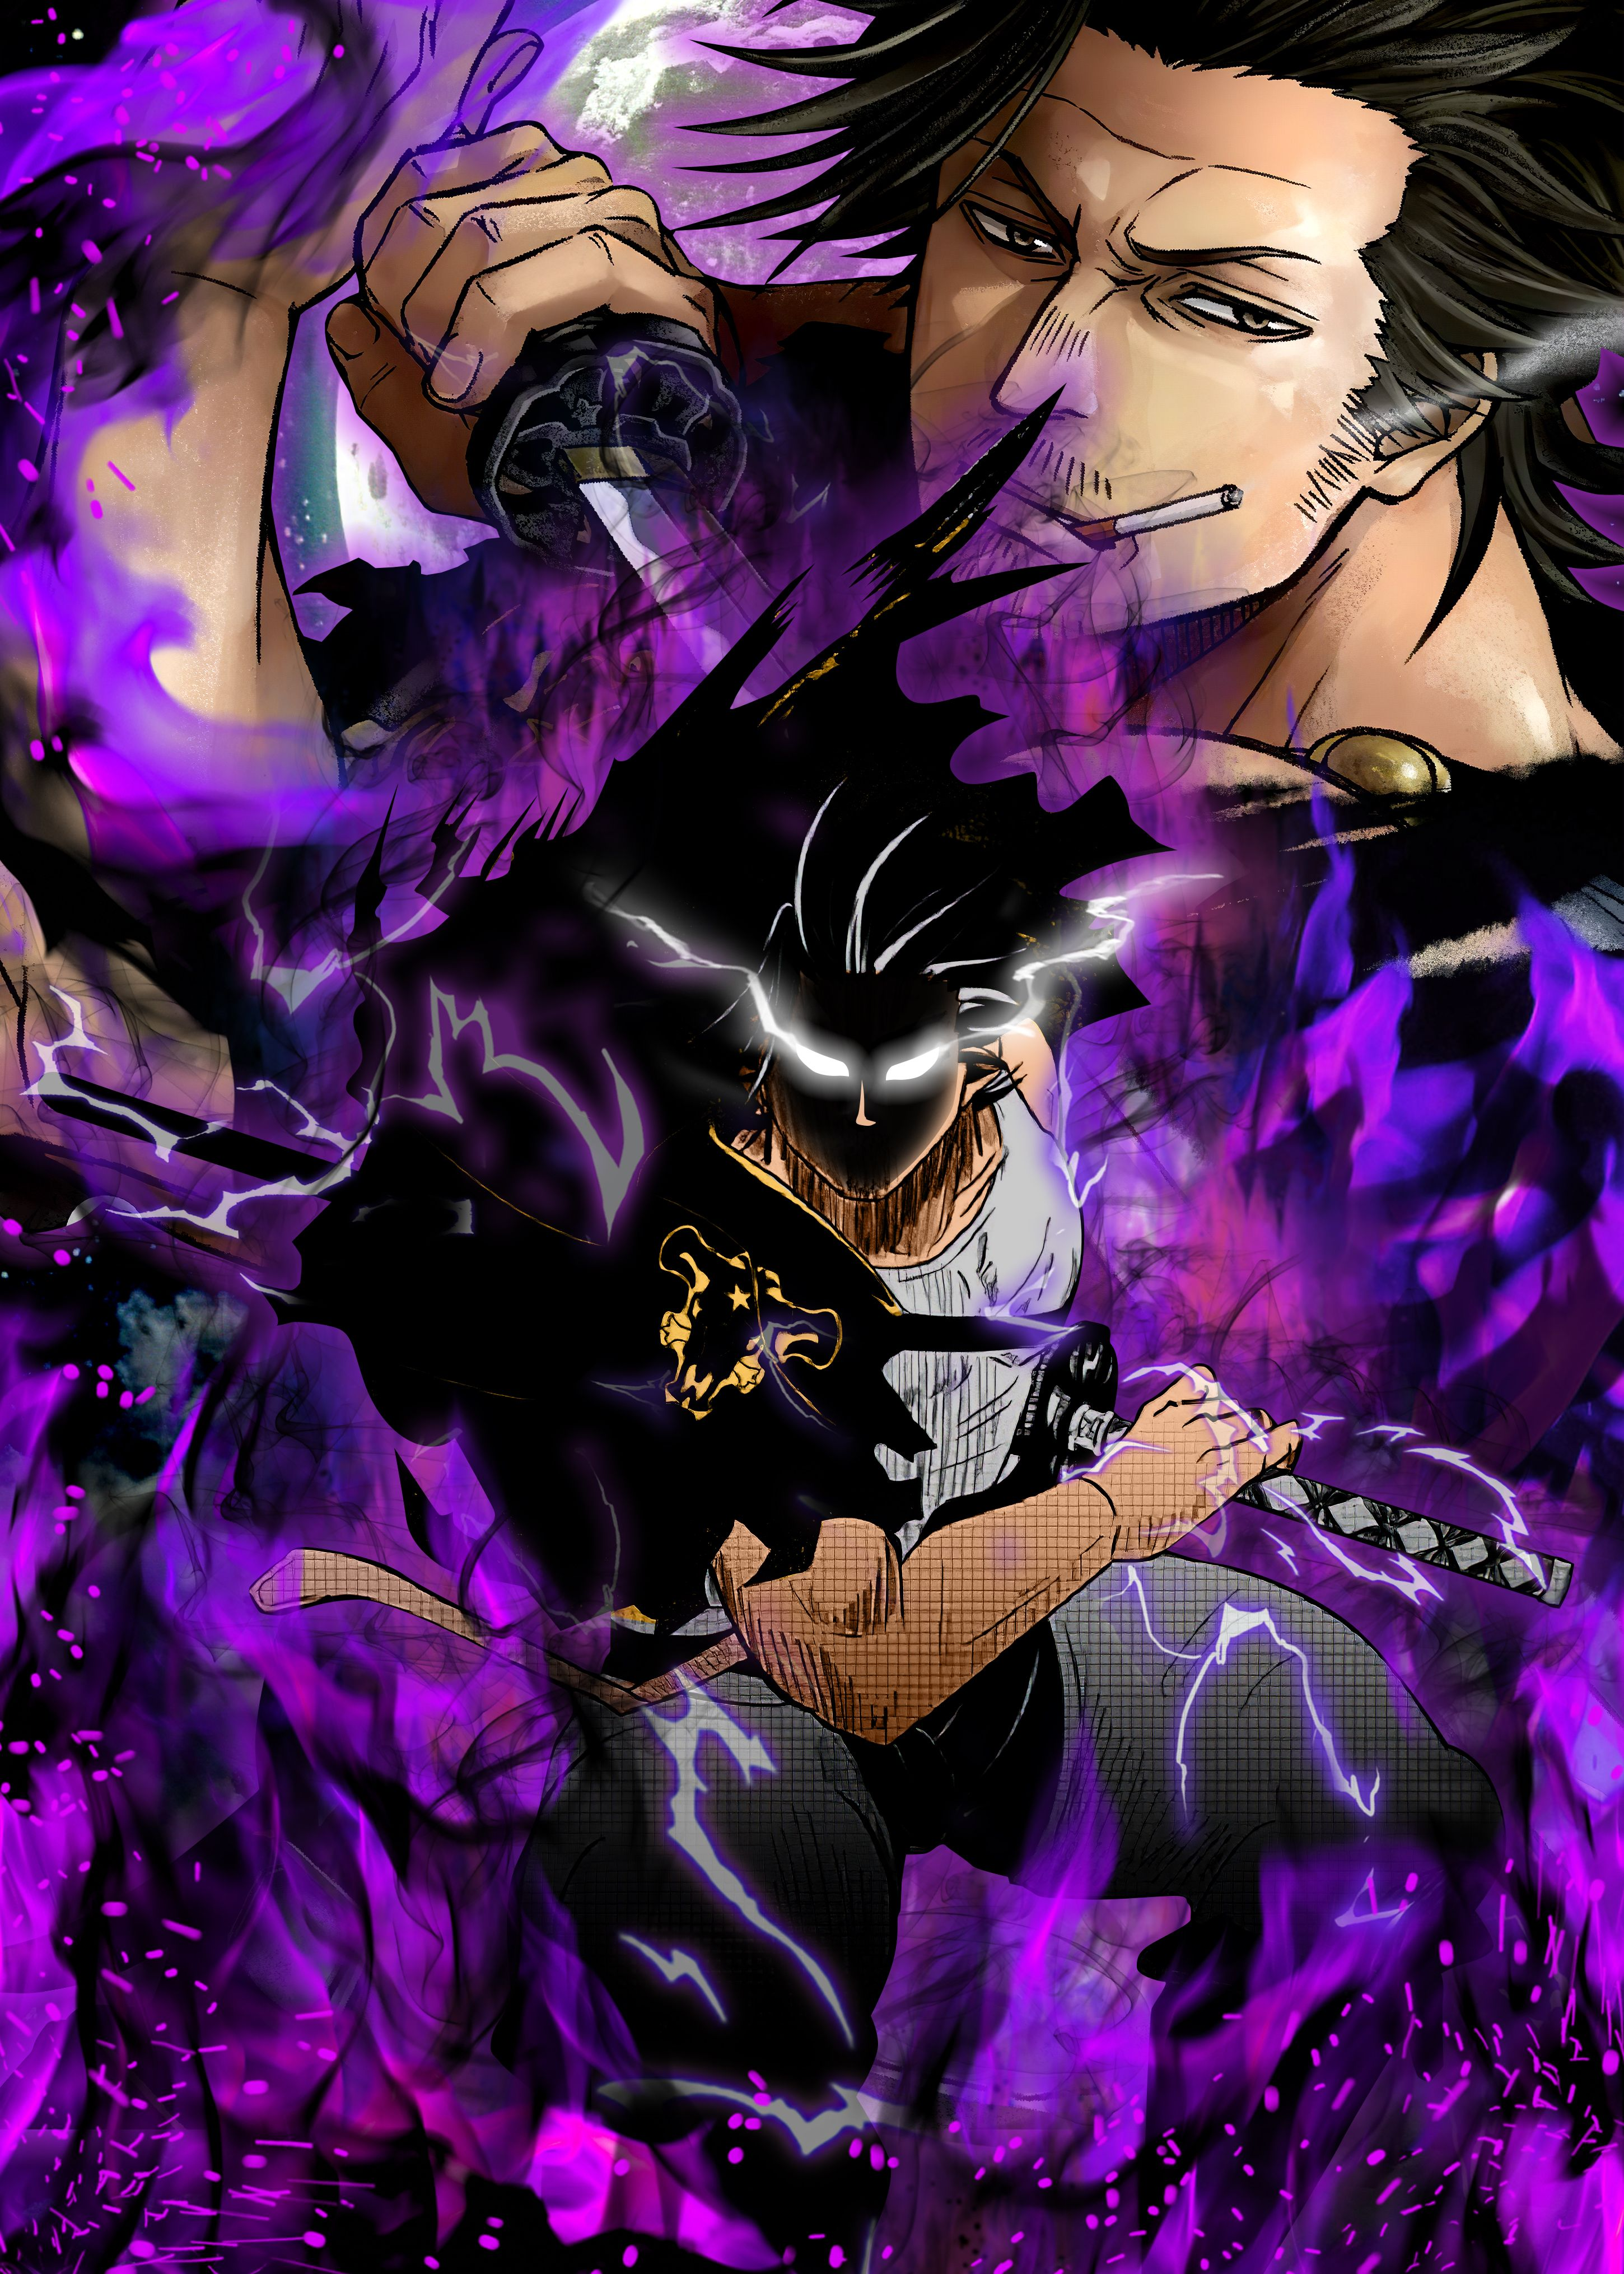 We may earn commission on some of the items you choose to buy. $39 Black Clover (Yami Sukehiro) Metal Poster | Black ...